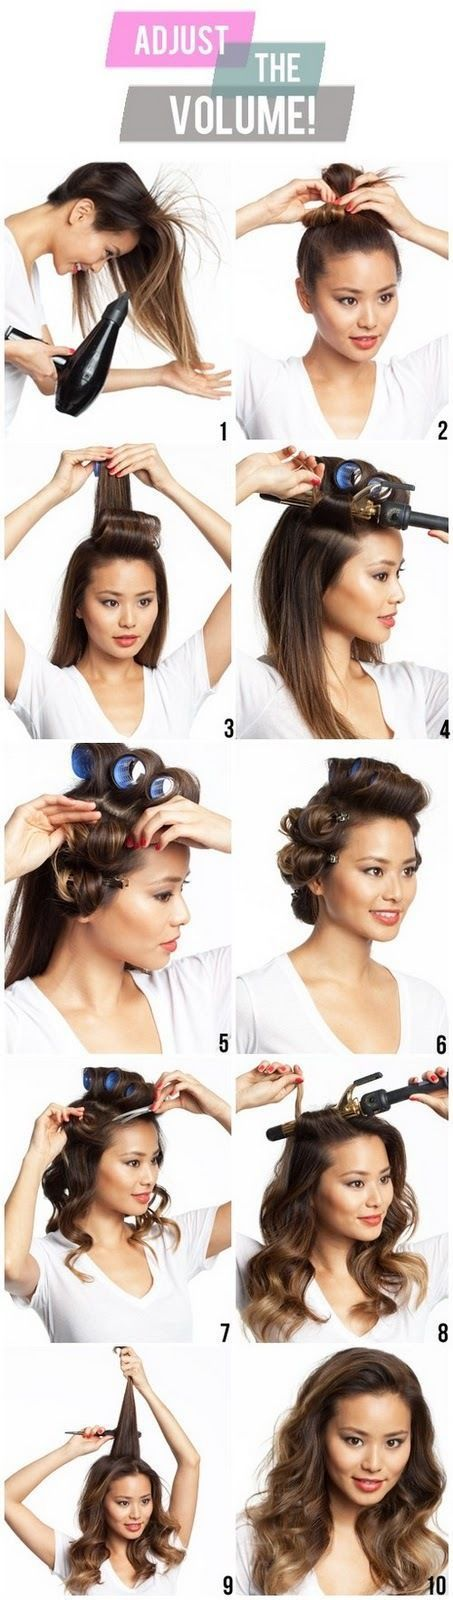 17 Thin Hair Tips, Tricks and Hacks To Get More Volume.